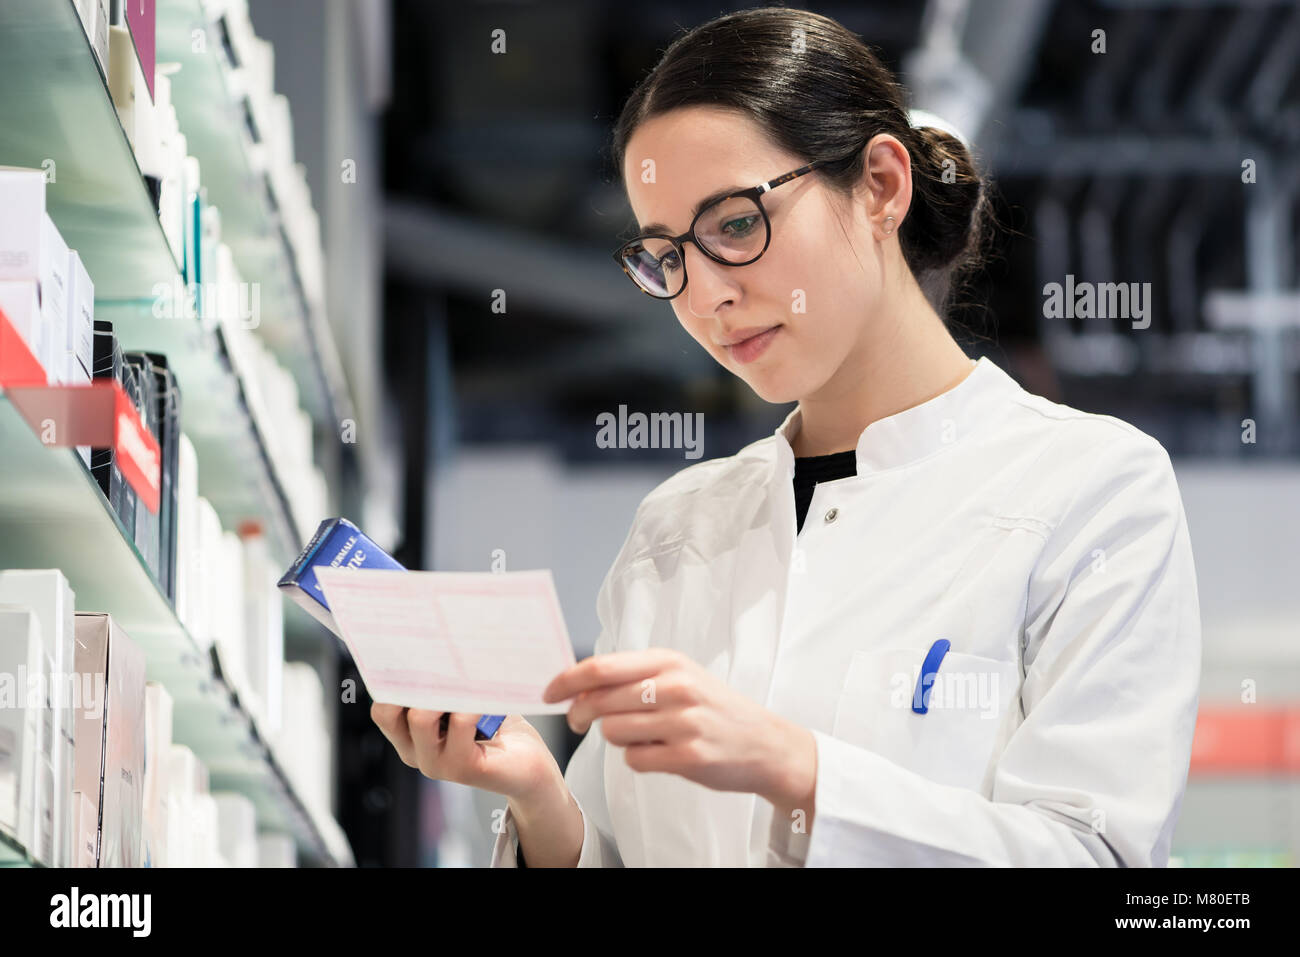 Low-angle portrait of female pharmacist checking a medical prescribtion - Stock Image